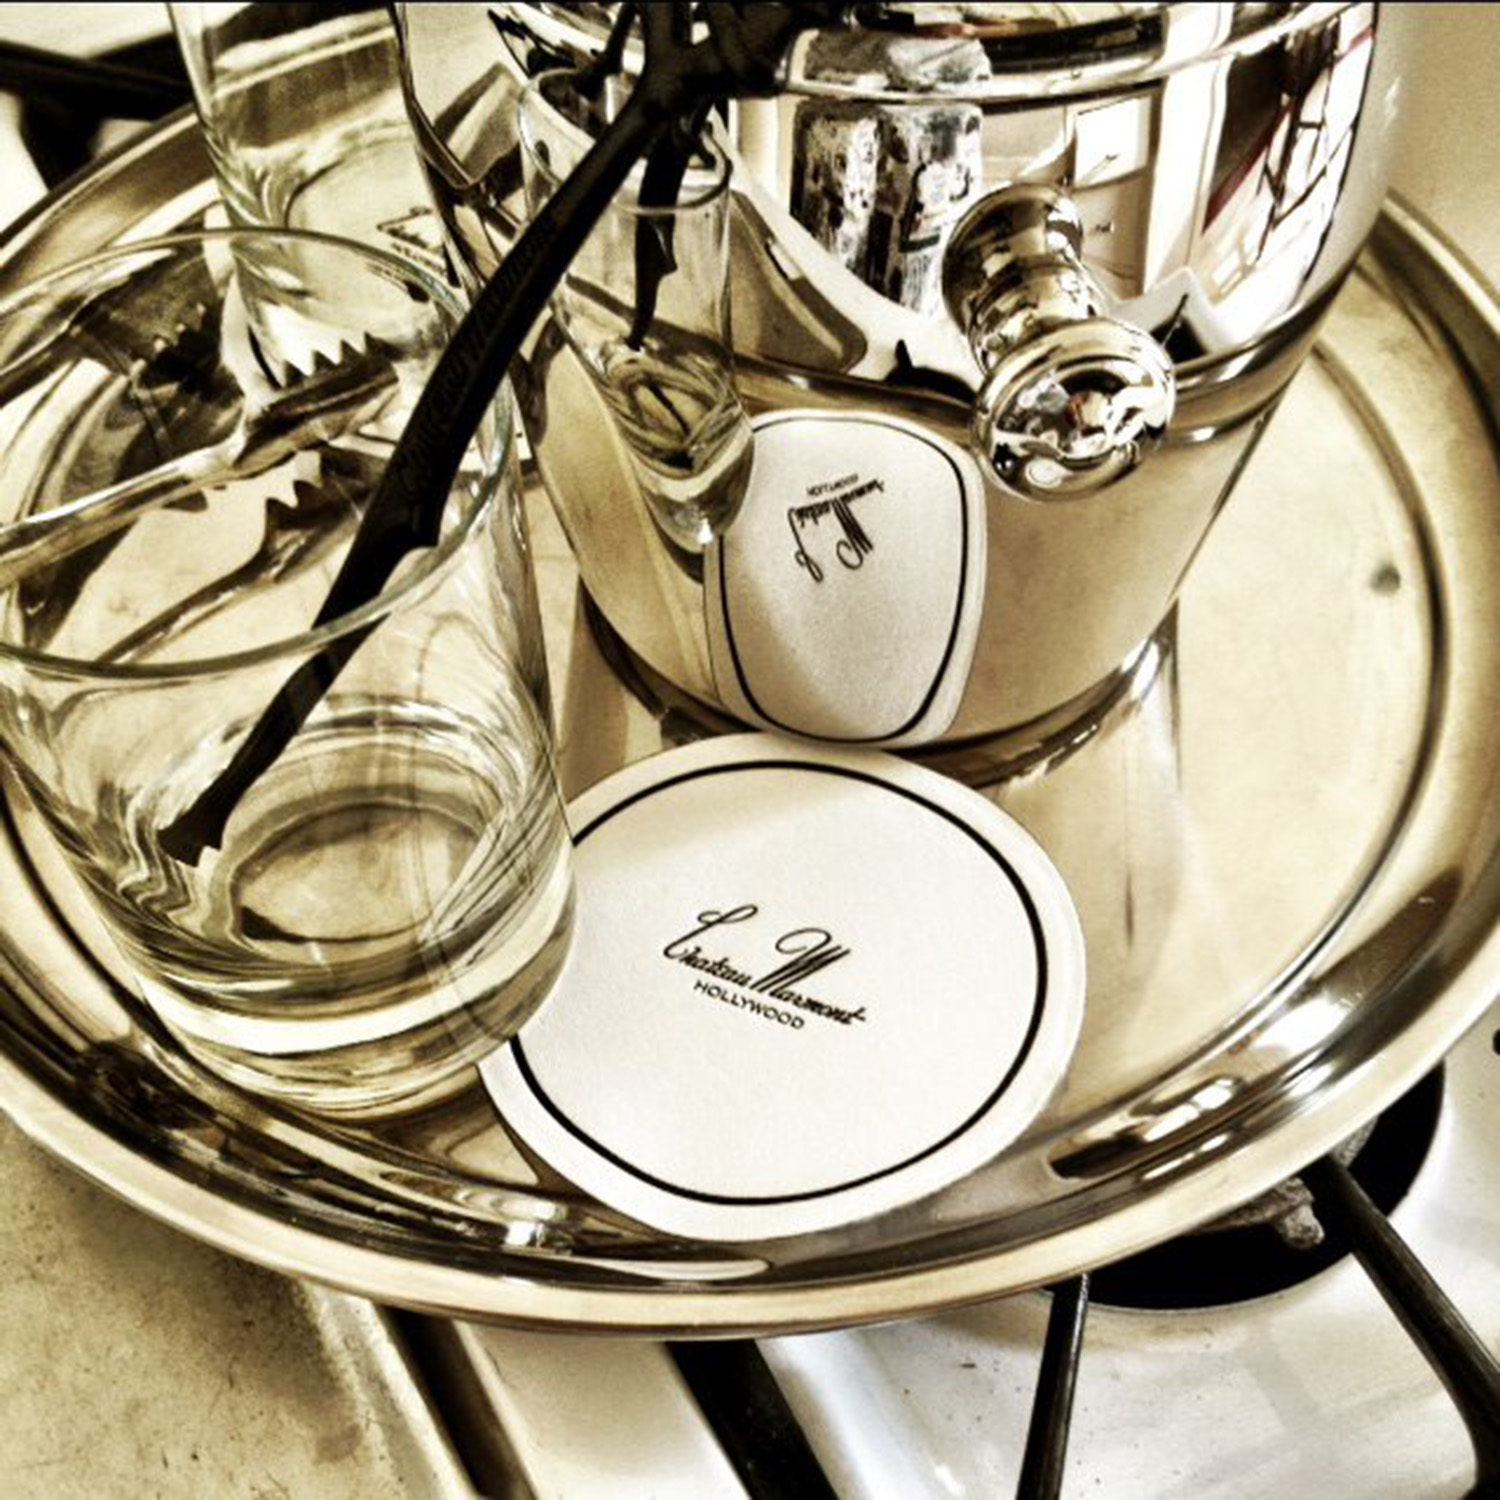 Silverware at the Chateau, July 2012